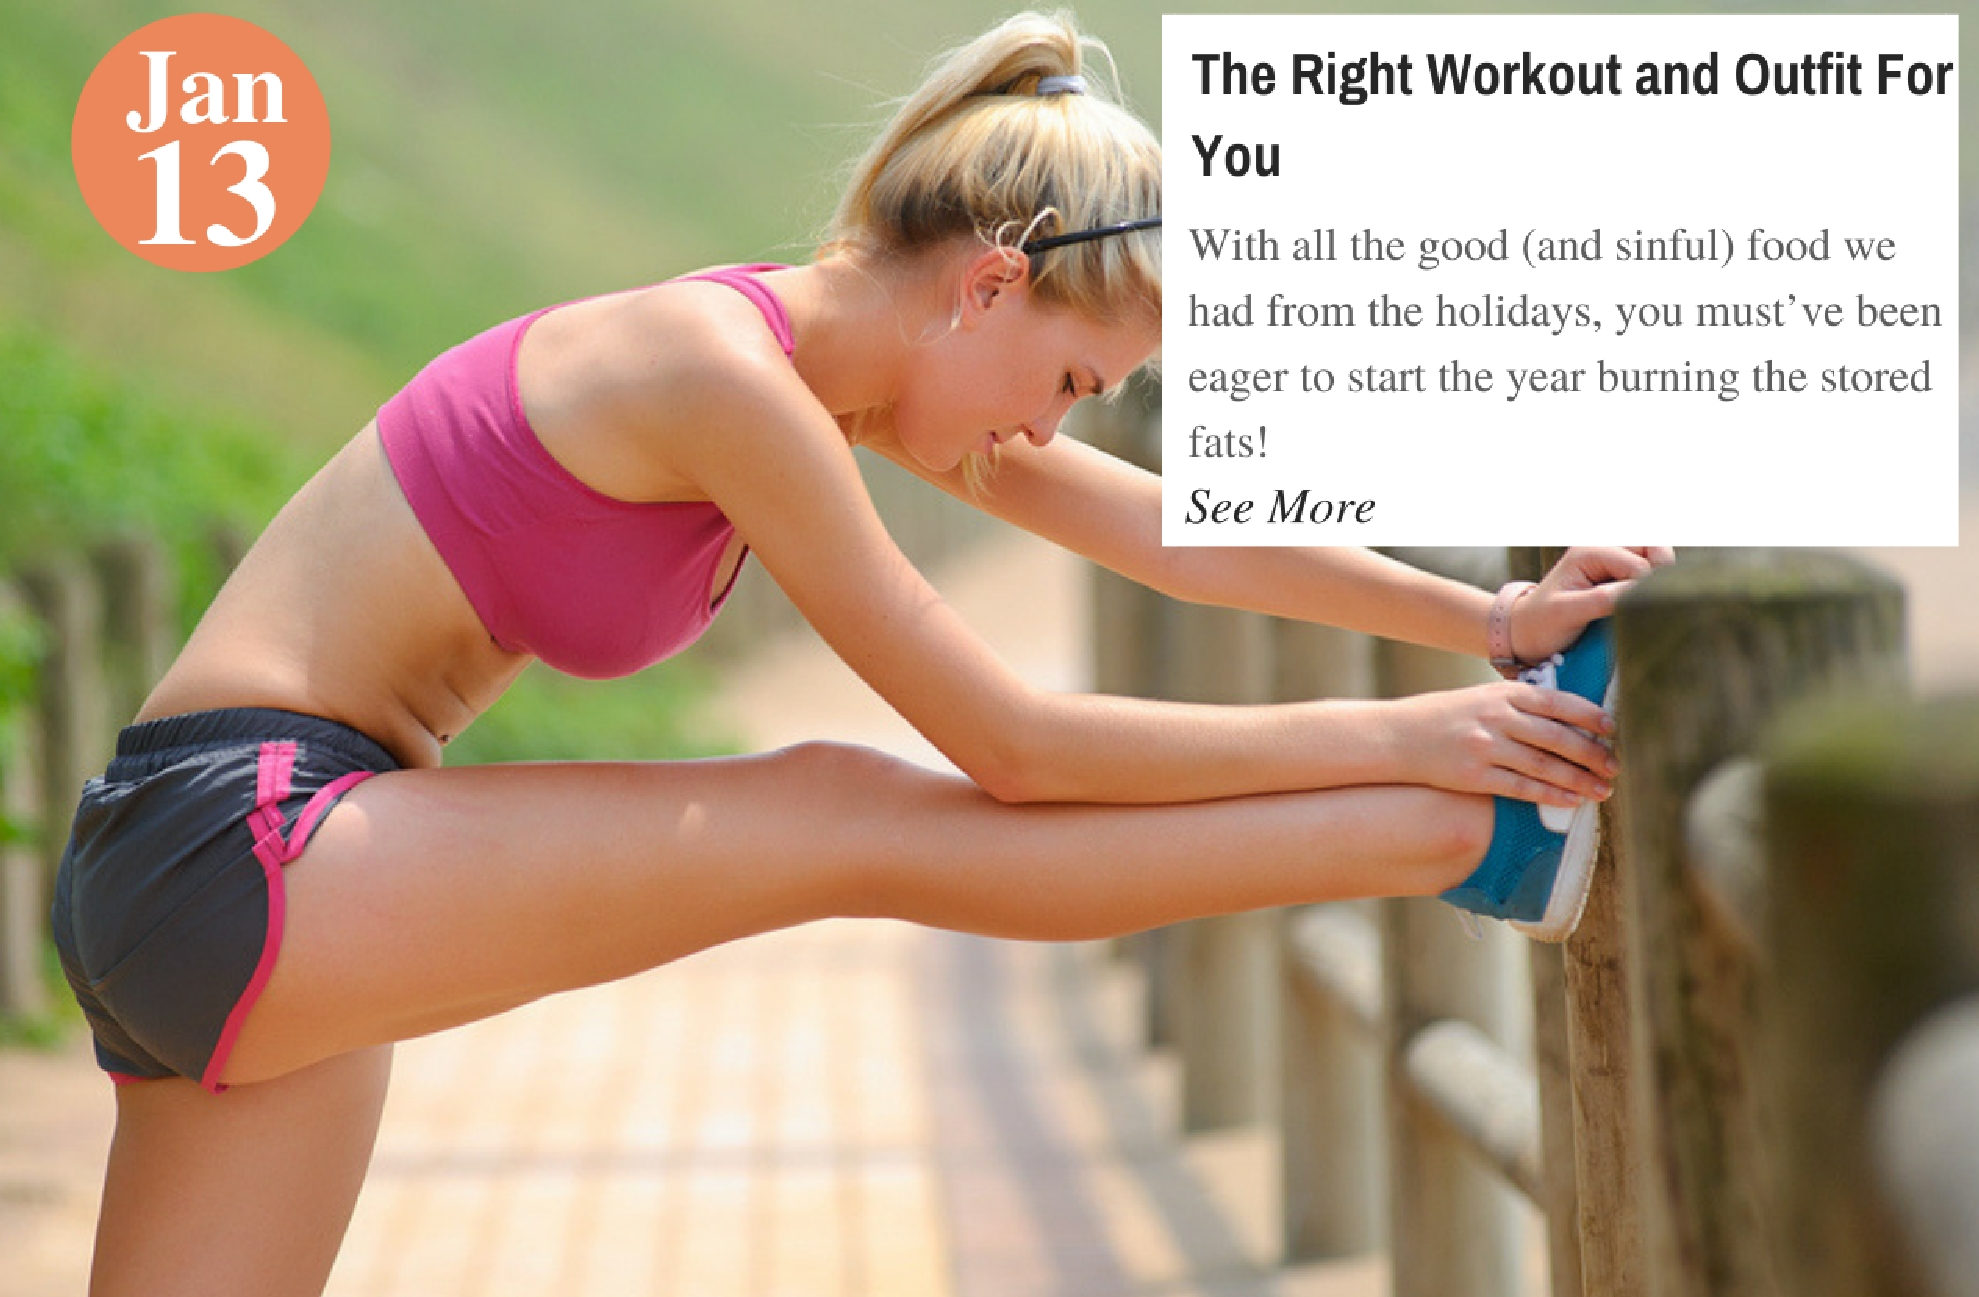 The Right Workout and Outfit For You